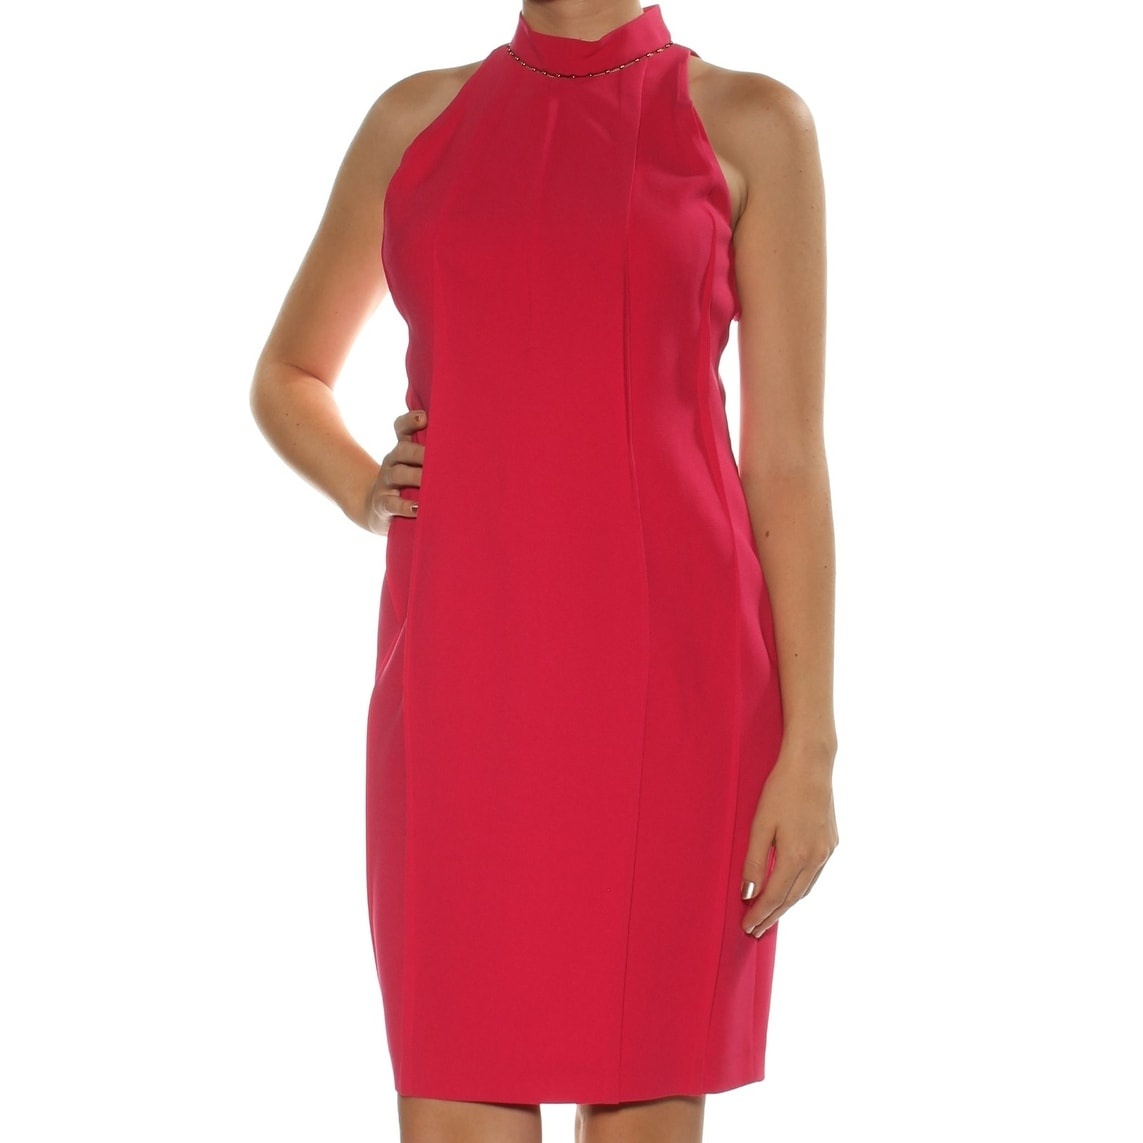 04a0afcc03c9 Shop ELIE TAHARI Womens Pink Beaded Sleeveless Jewel Neck Knee Length  Sheath Dress Size: 10 - Free Shipping On Orders Over $45 - Overstock -  24083522